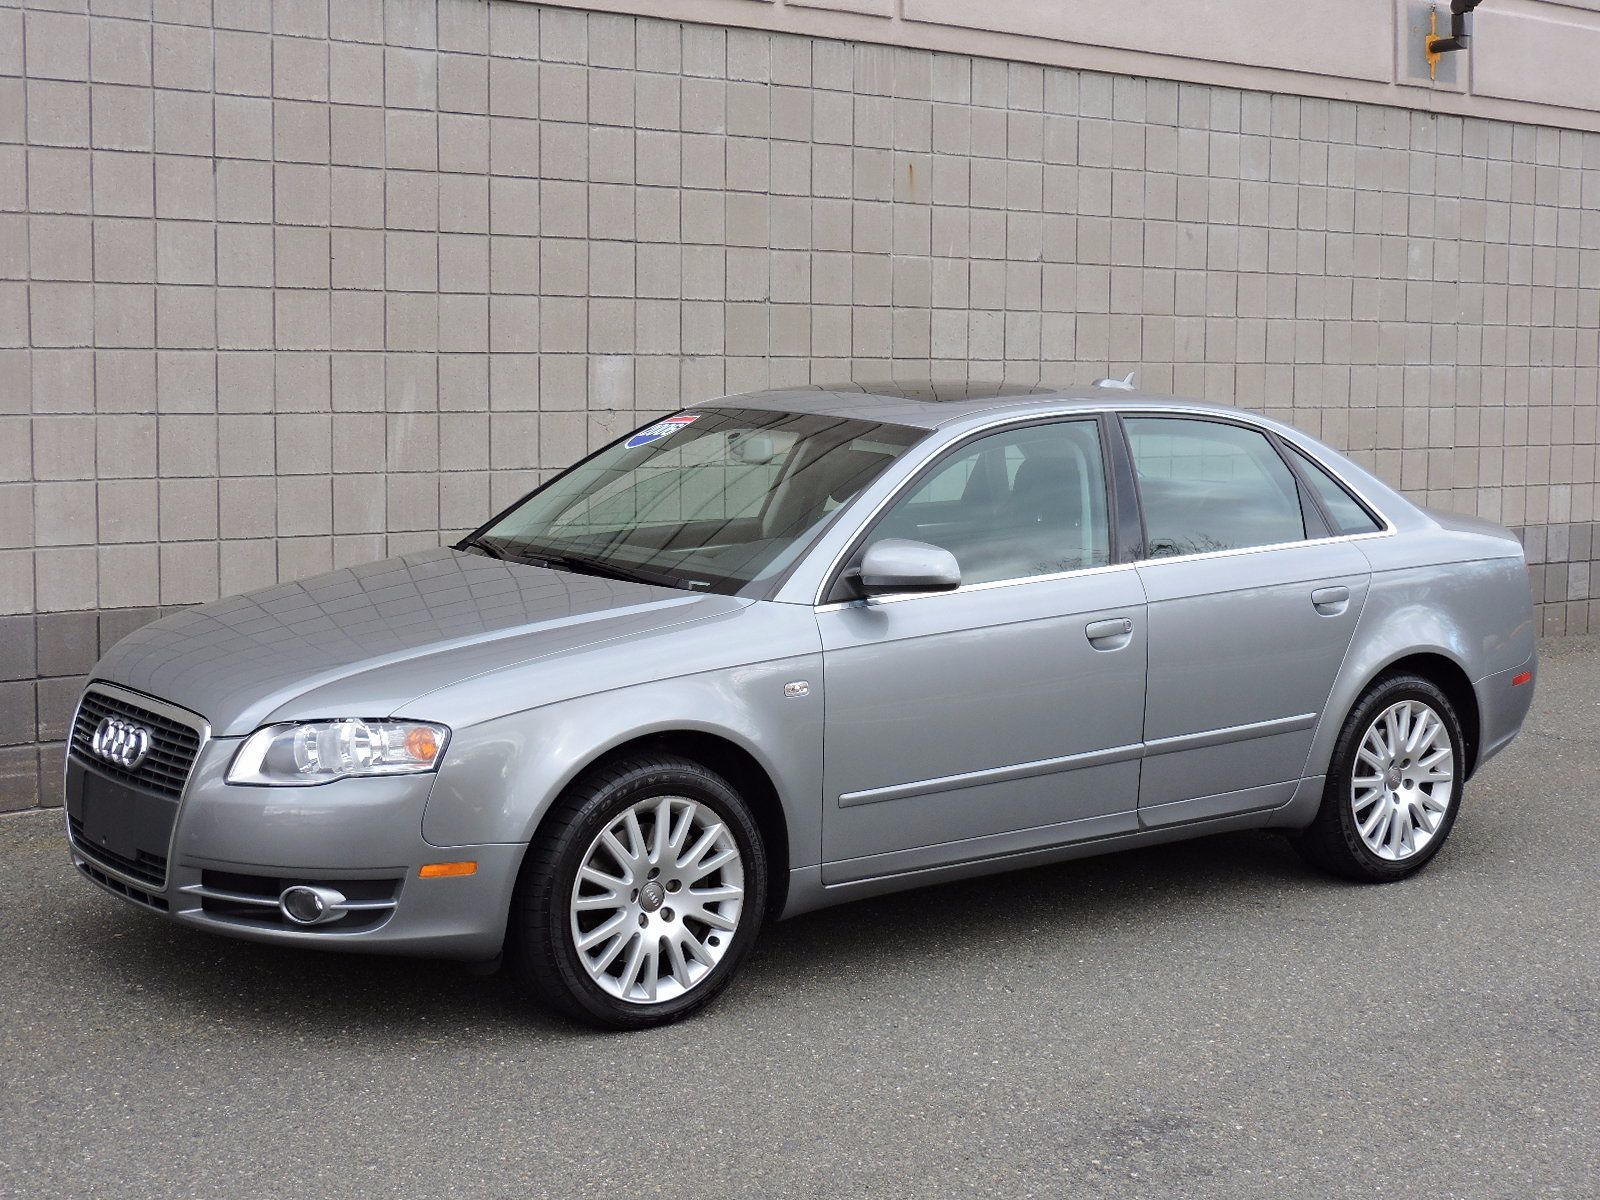 used 2006 audi a4 2.0t at saugus auto mall